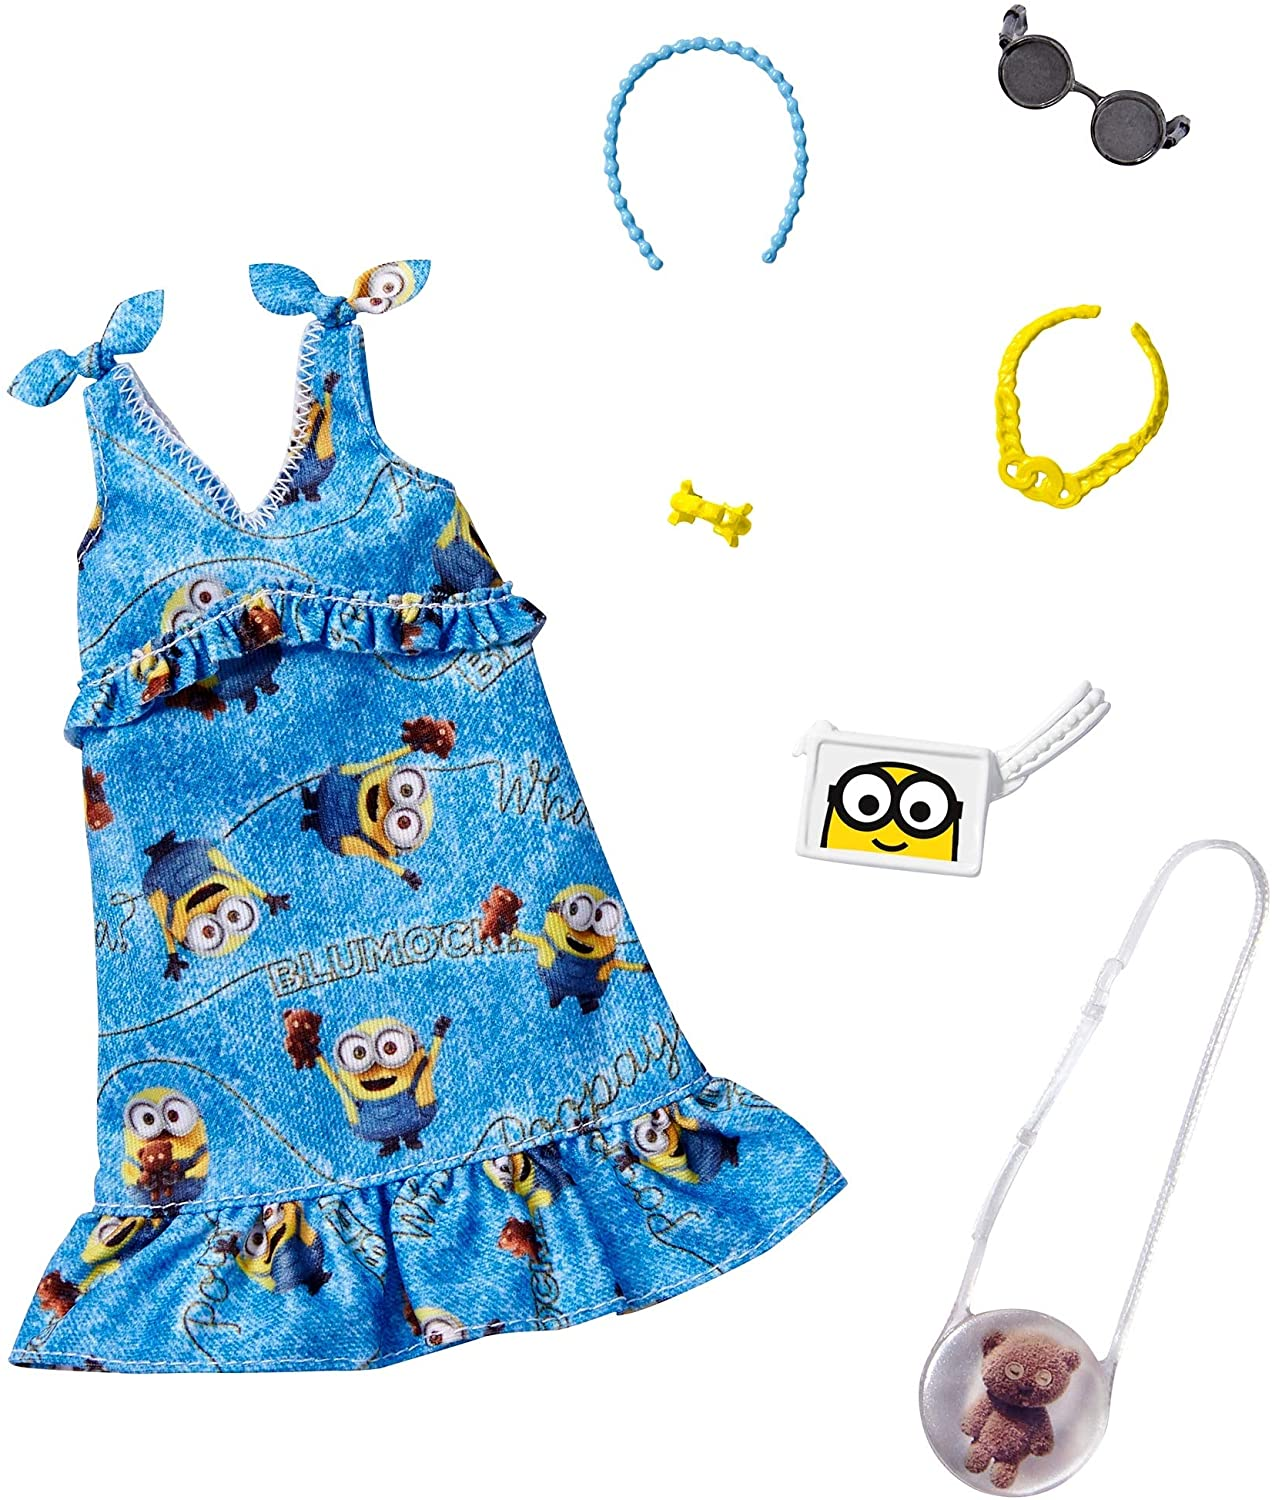 Barbie Storytelling Fashion Pack of by Min Inspired Clothes Max 73% OFF Doll Popular